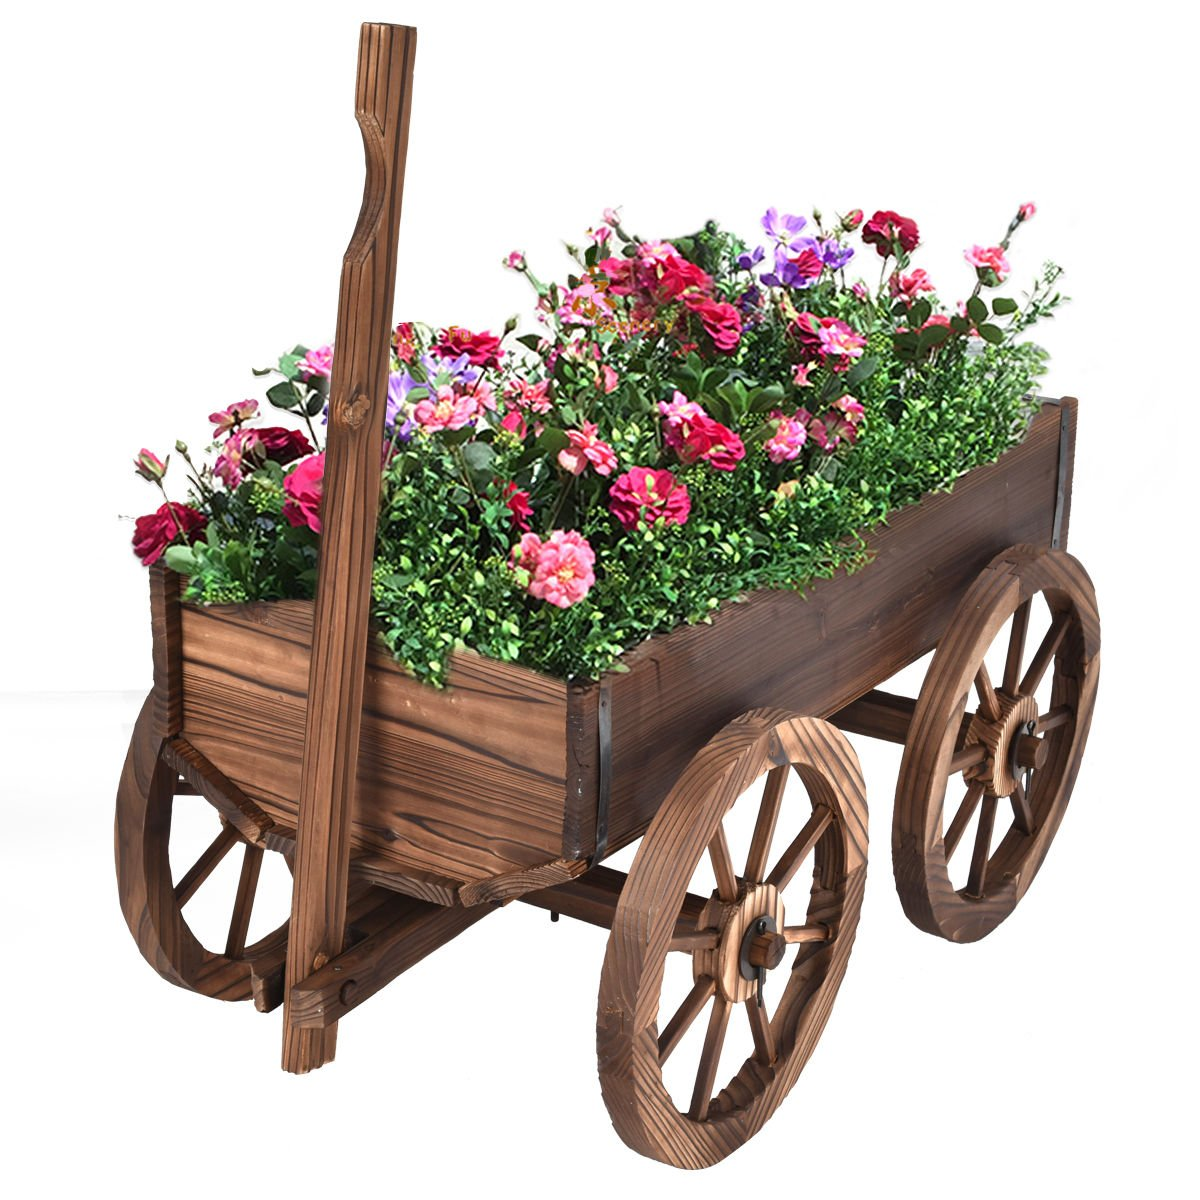 New Planter Pot Stand W/Wheels Home Garden Outdoor Decor Wood Wagon Flower by totoshop